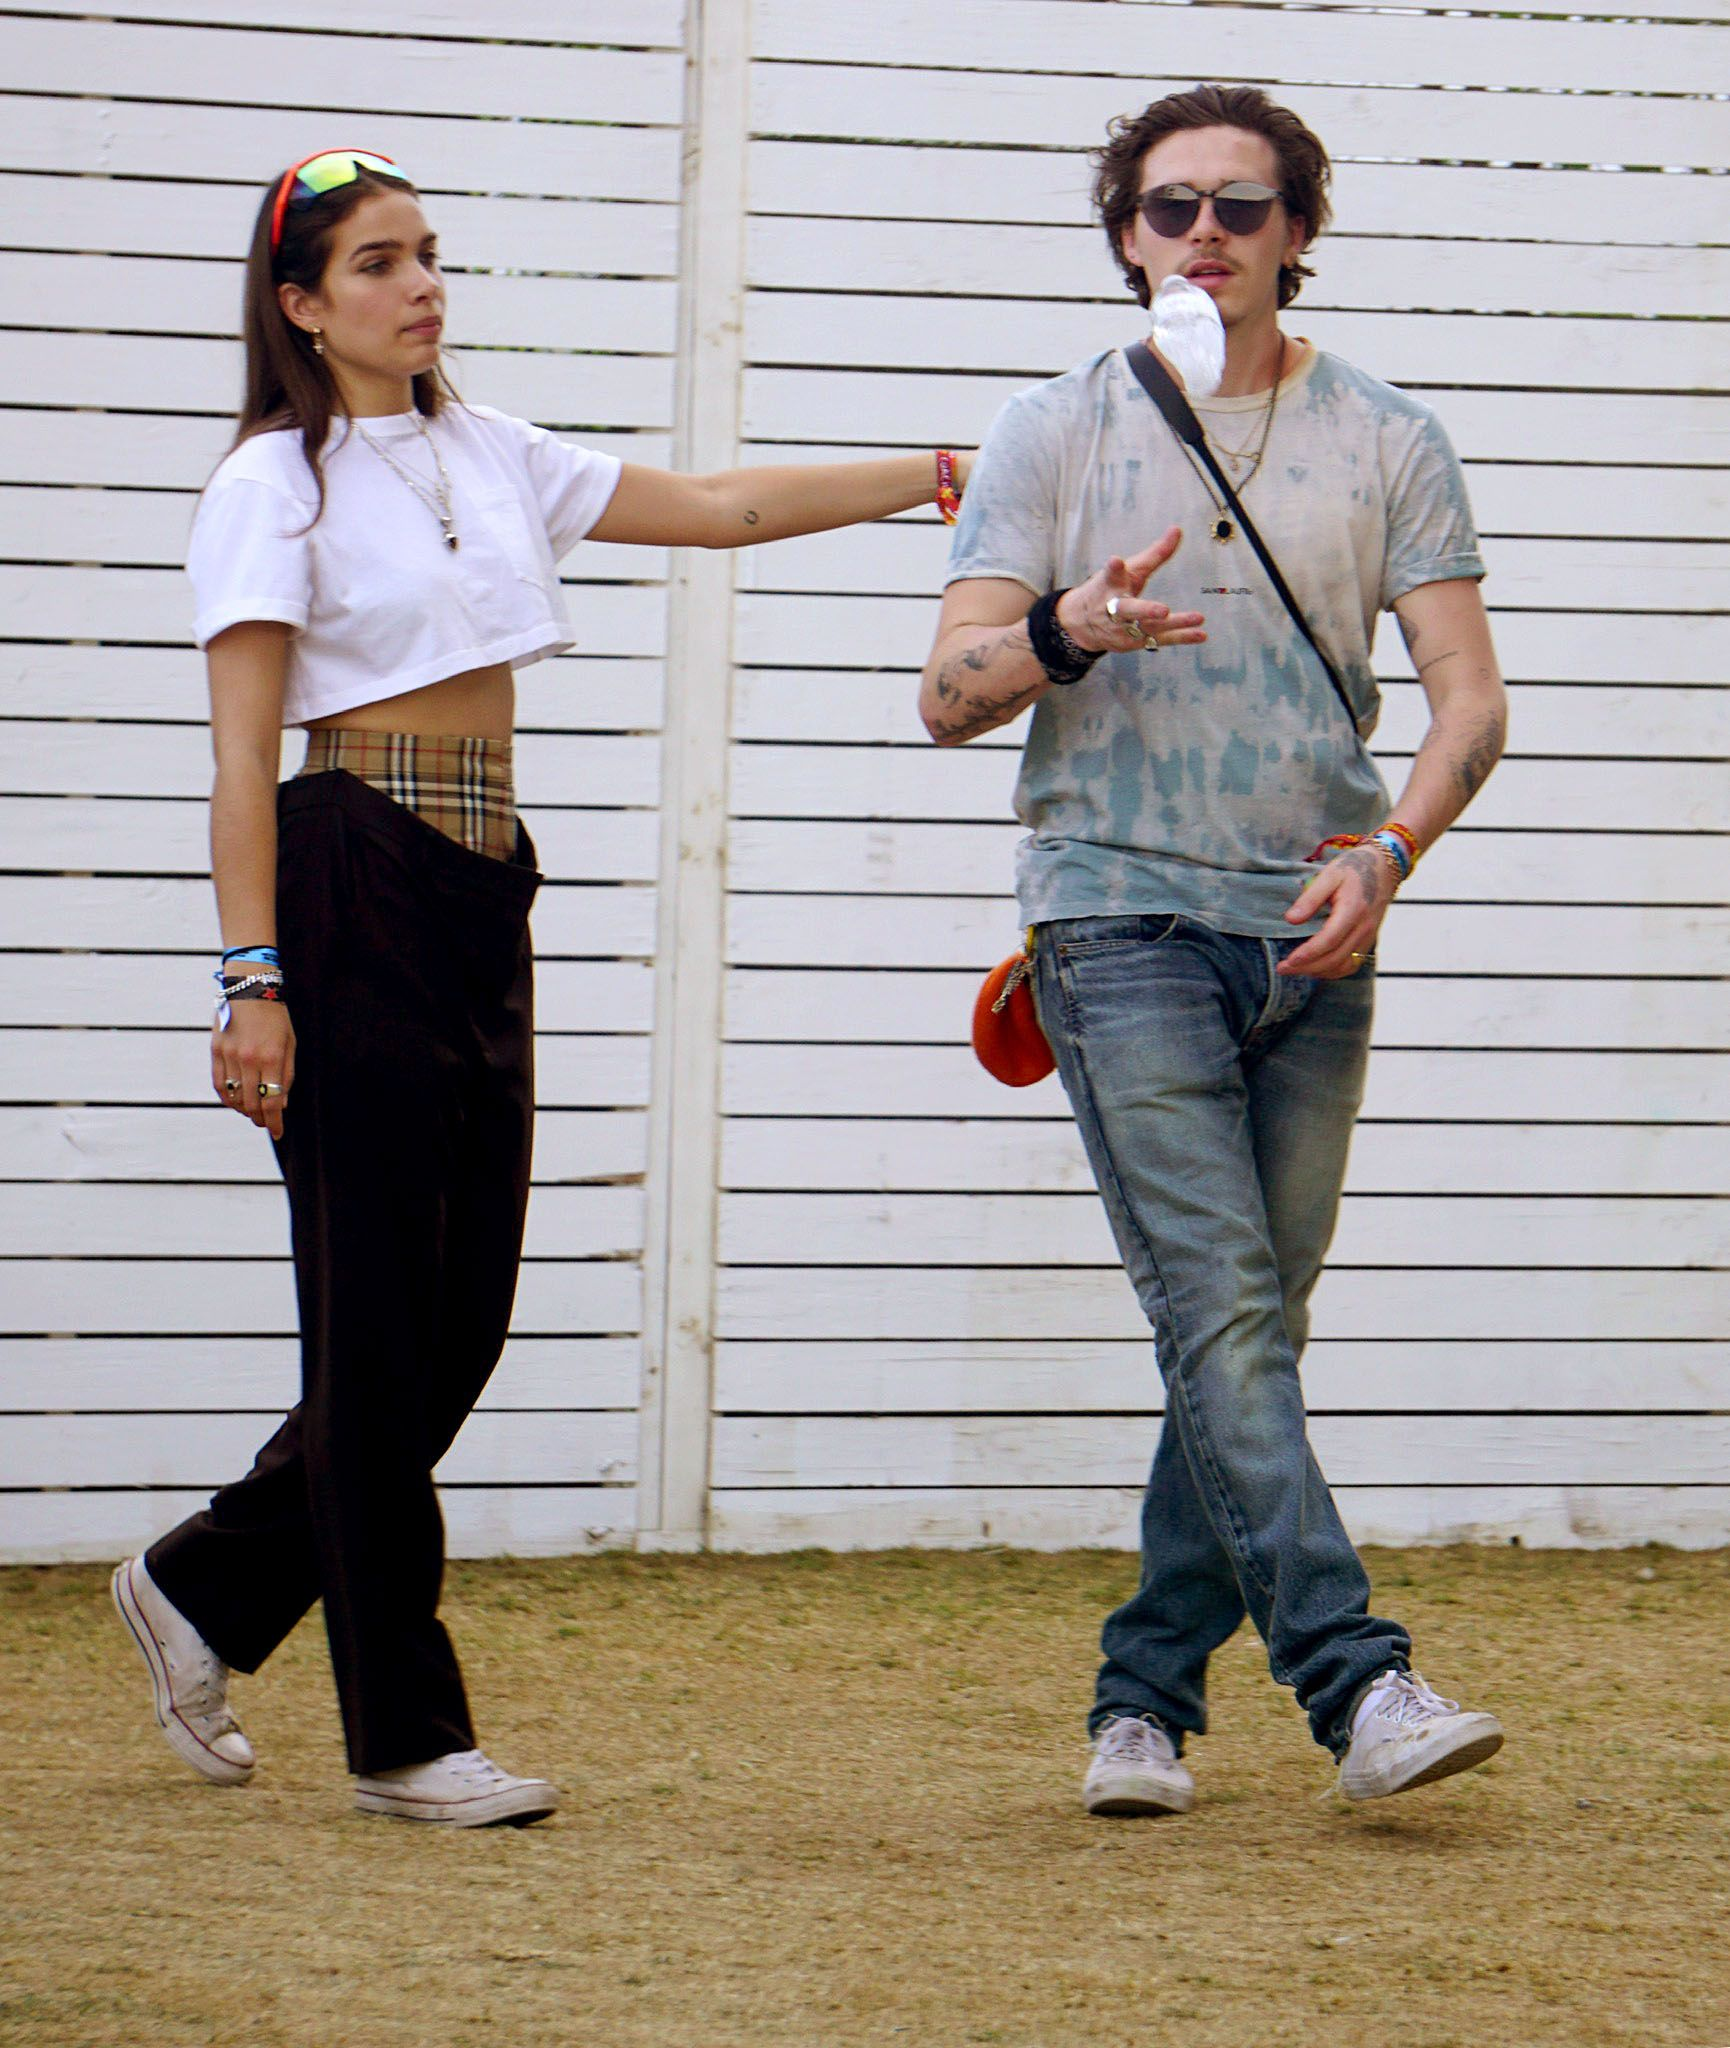 Brooklyn Beckham Nailed Coachella Style By Keeping It Simple